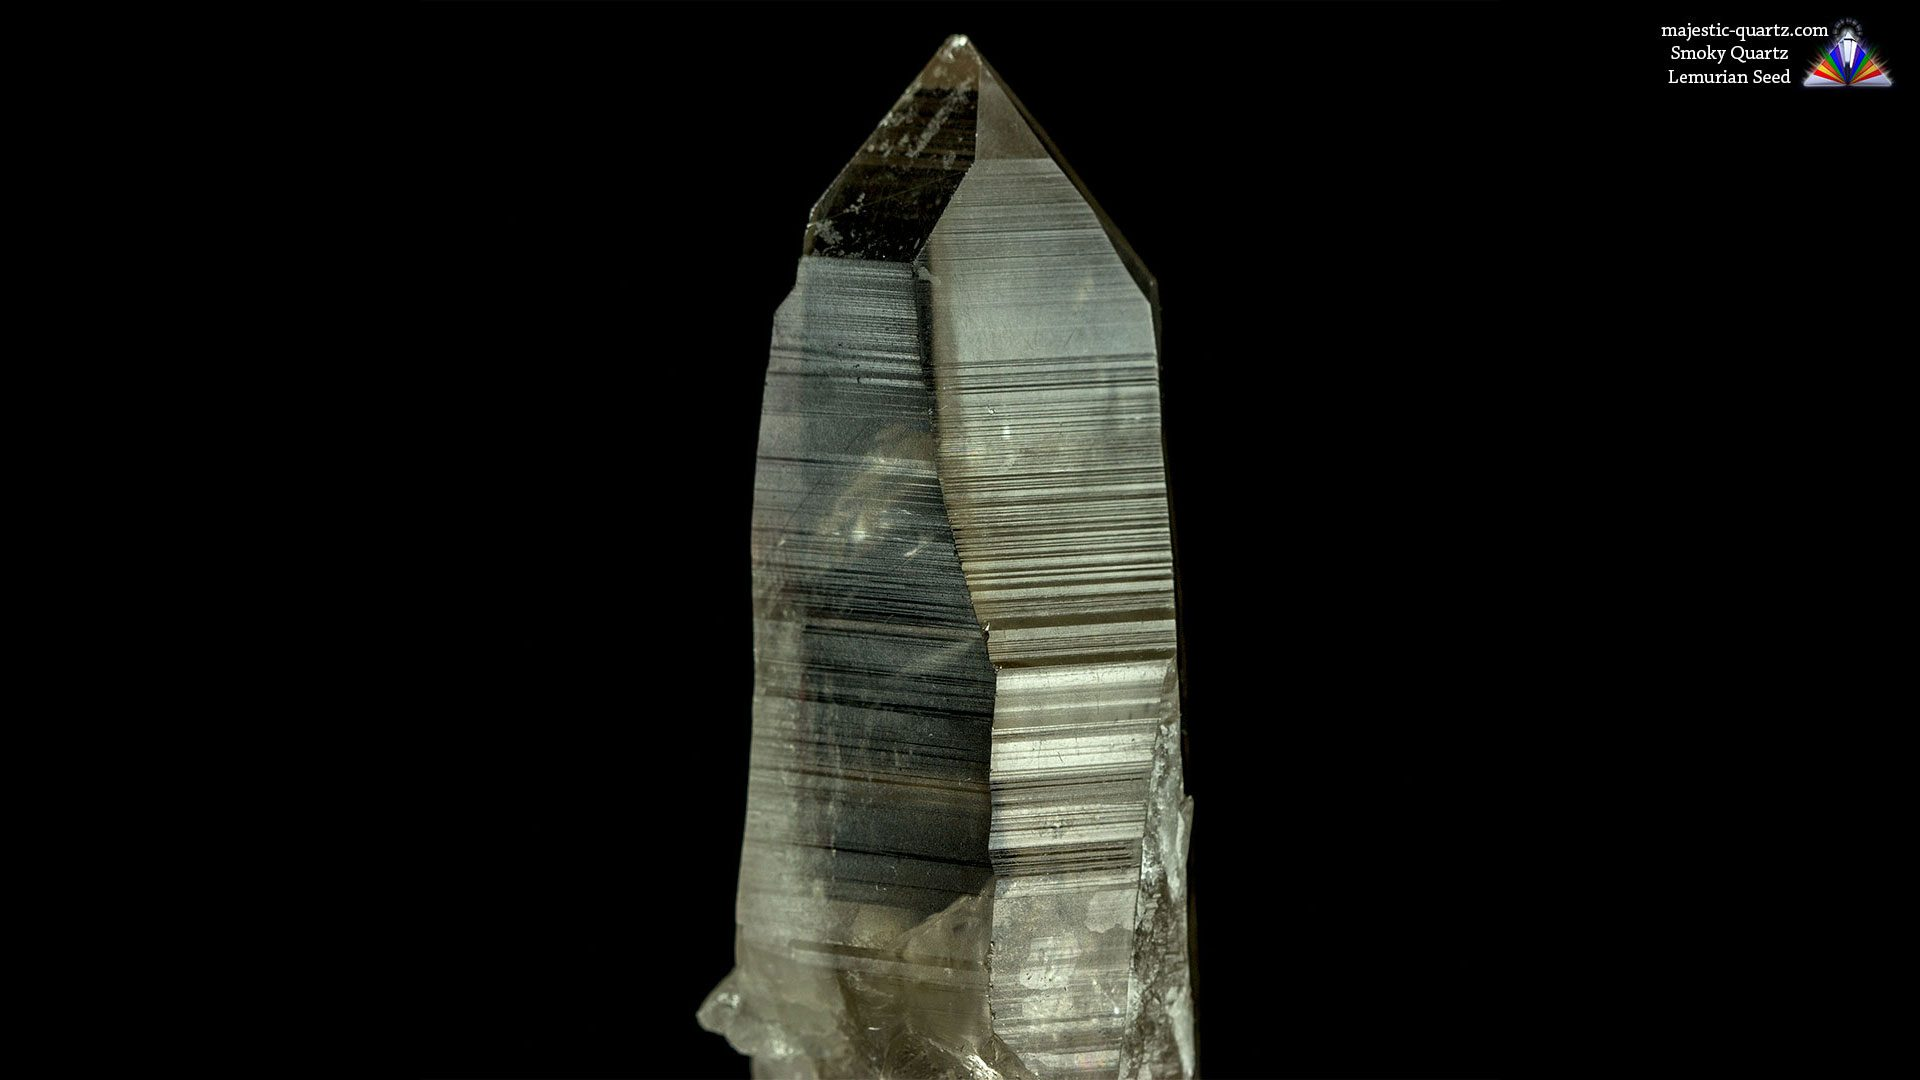 Lemurian Seed Quartz Properties and Meaning - Photograph By Anthony Bradford